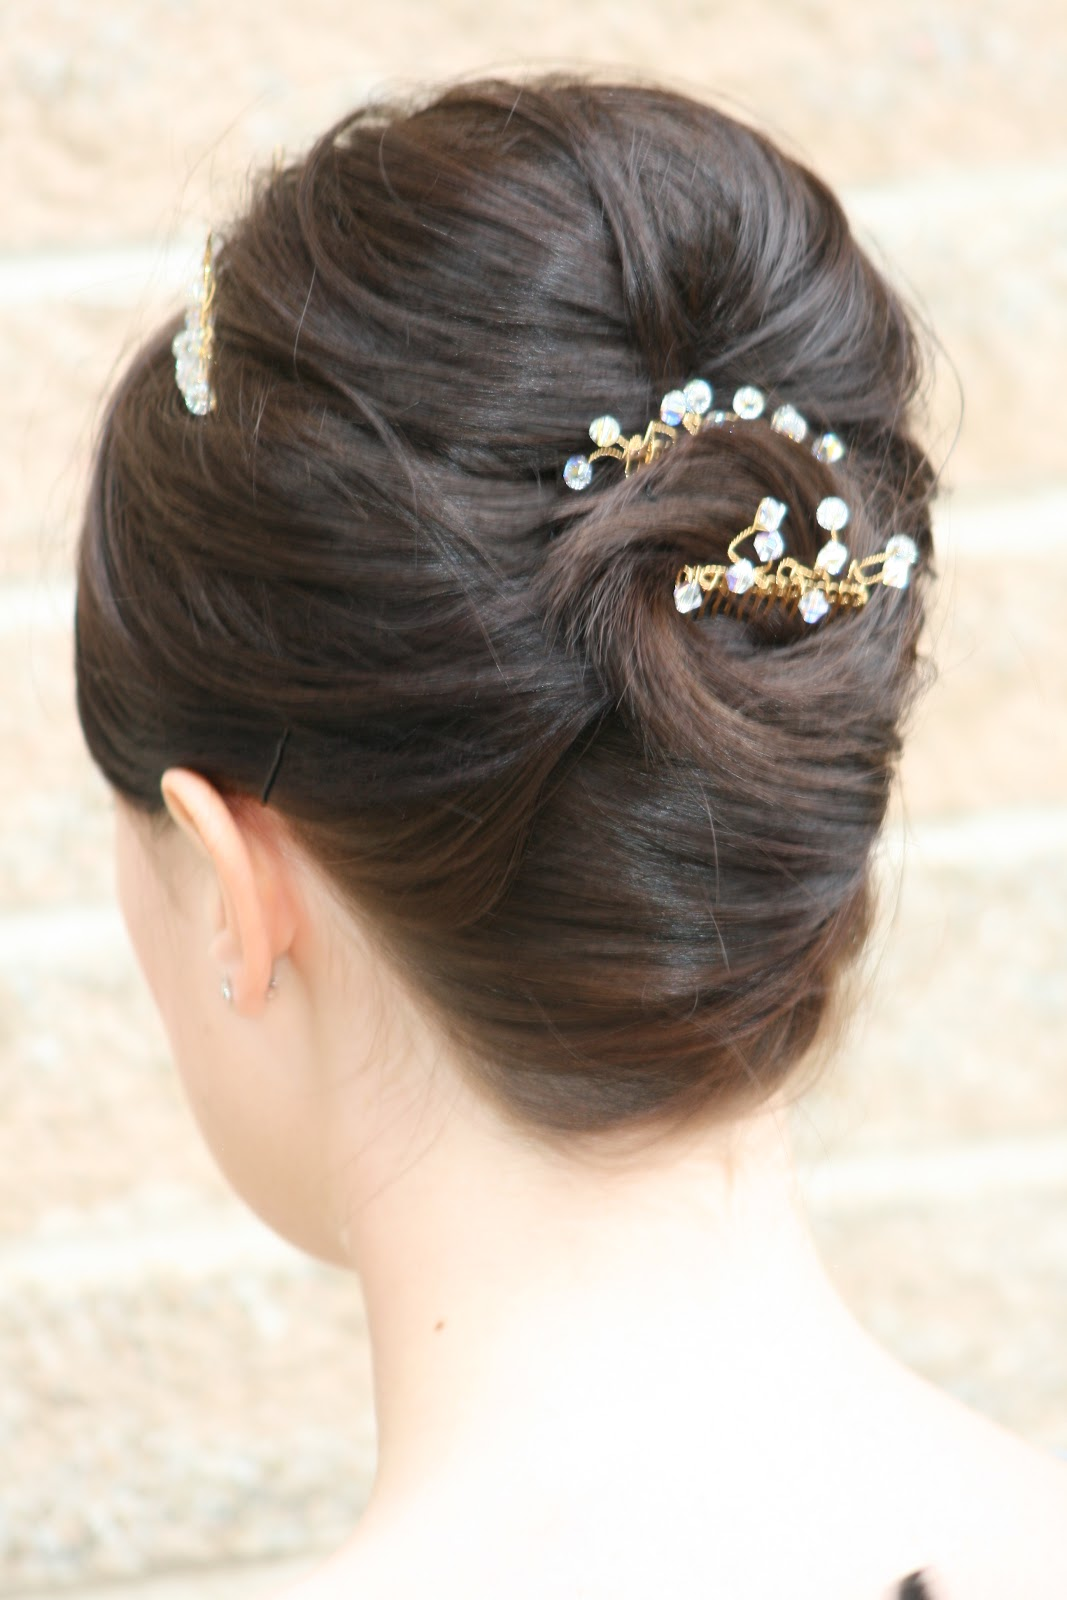 French Roll Hairstyle For Wedding http://www.louisechrystal.com/2012 ...